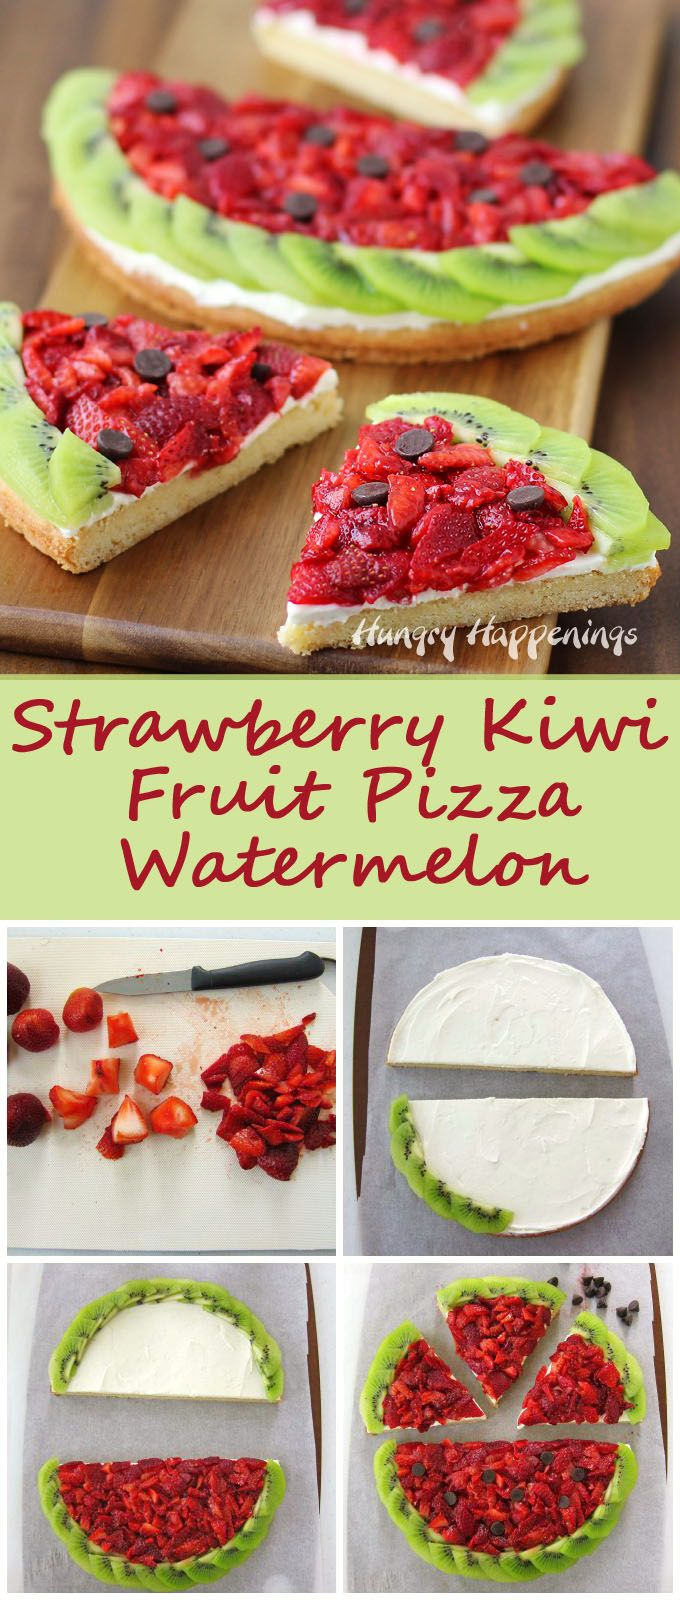 Here's a fun summer recipe that isn't exactly as it appears. This Strawberry Kiwi Fruit Pizza looks like a watermelon but tastes like a dessert.